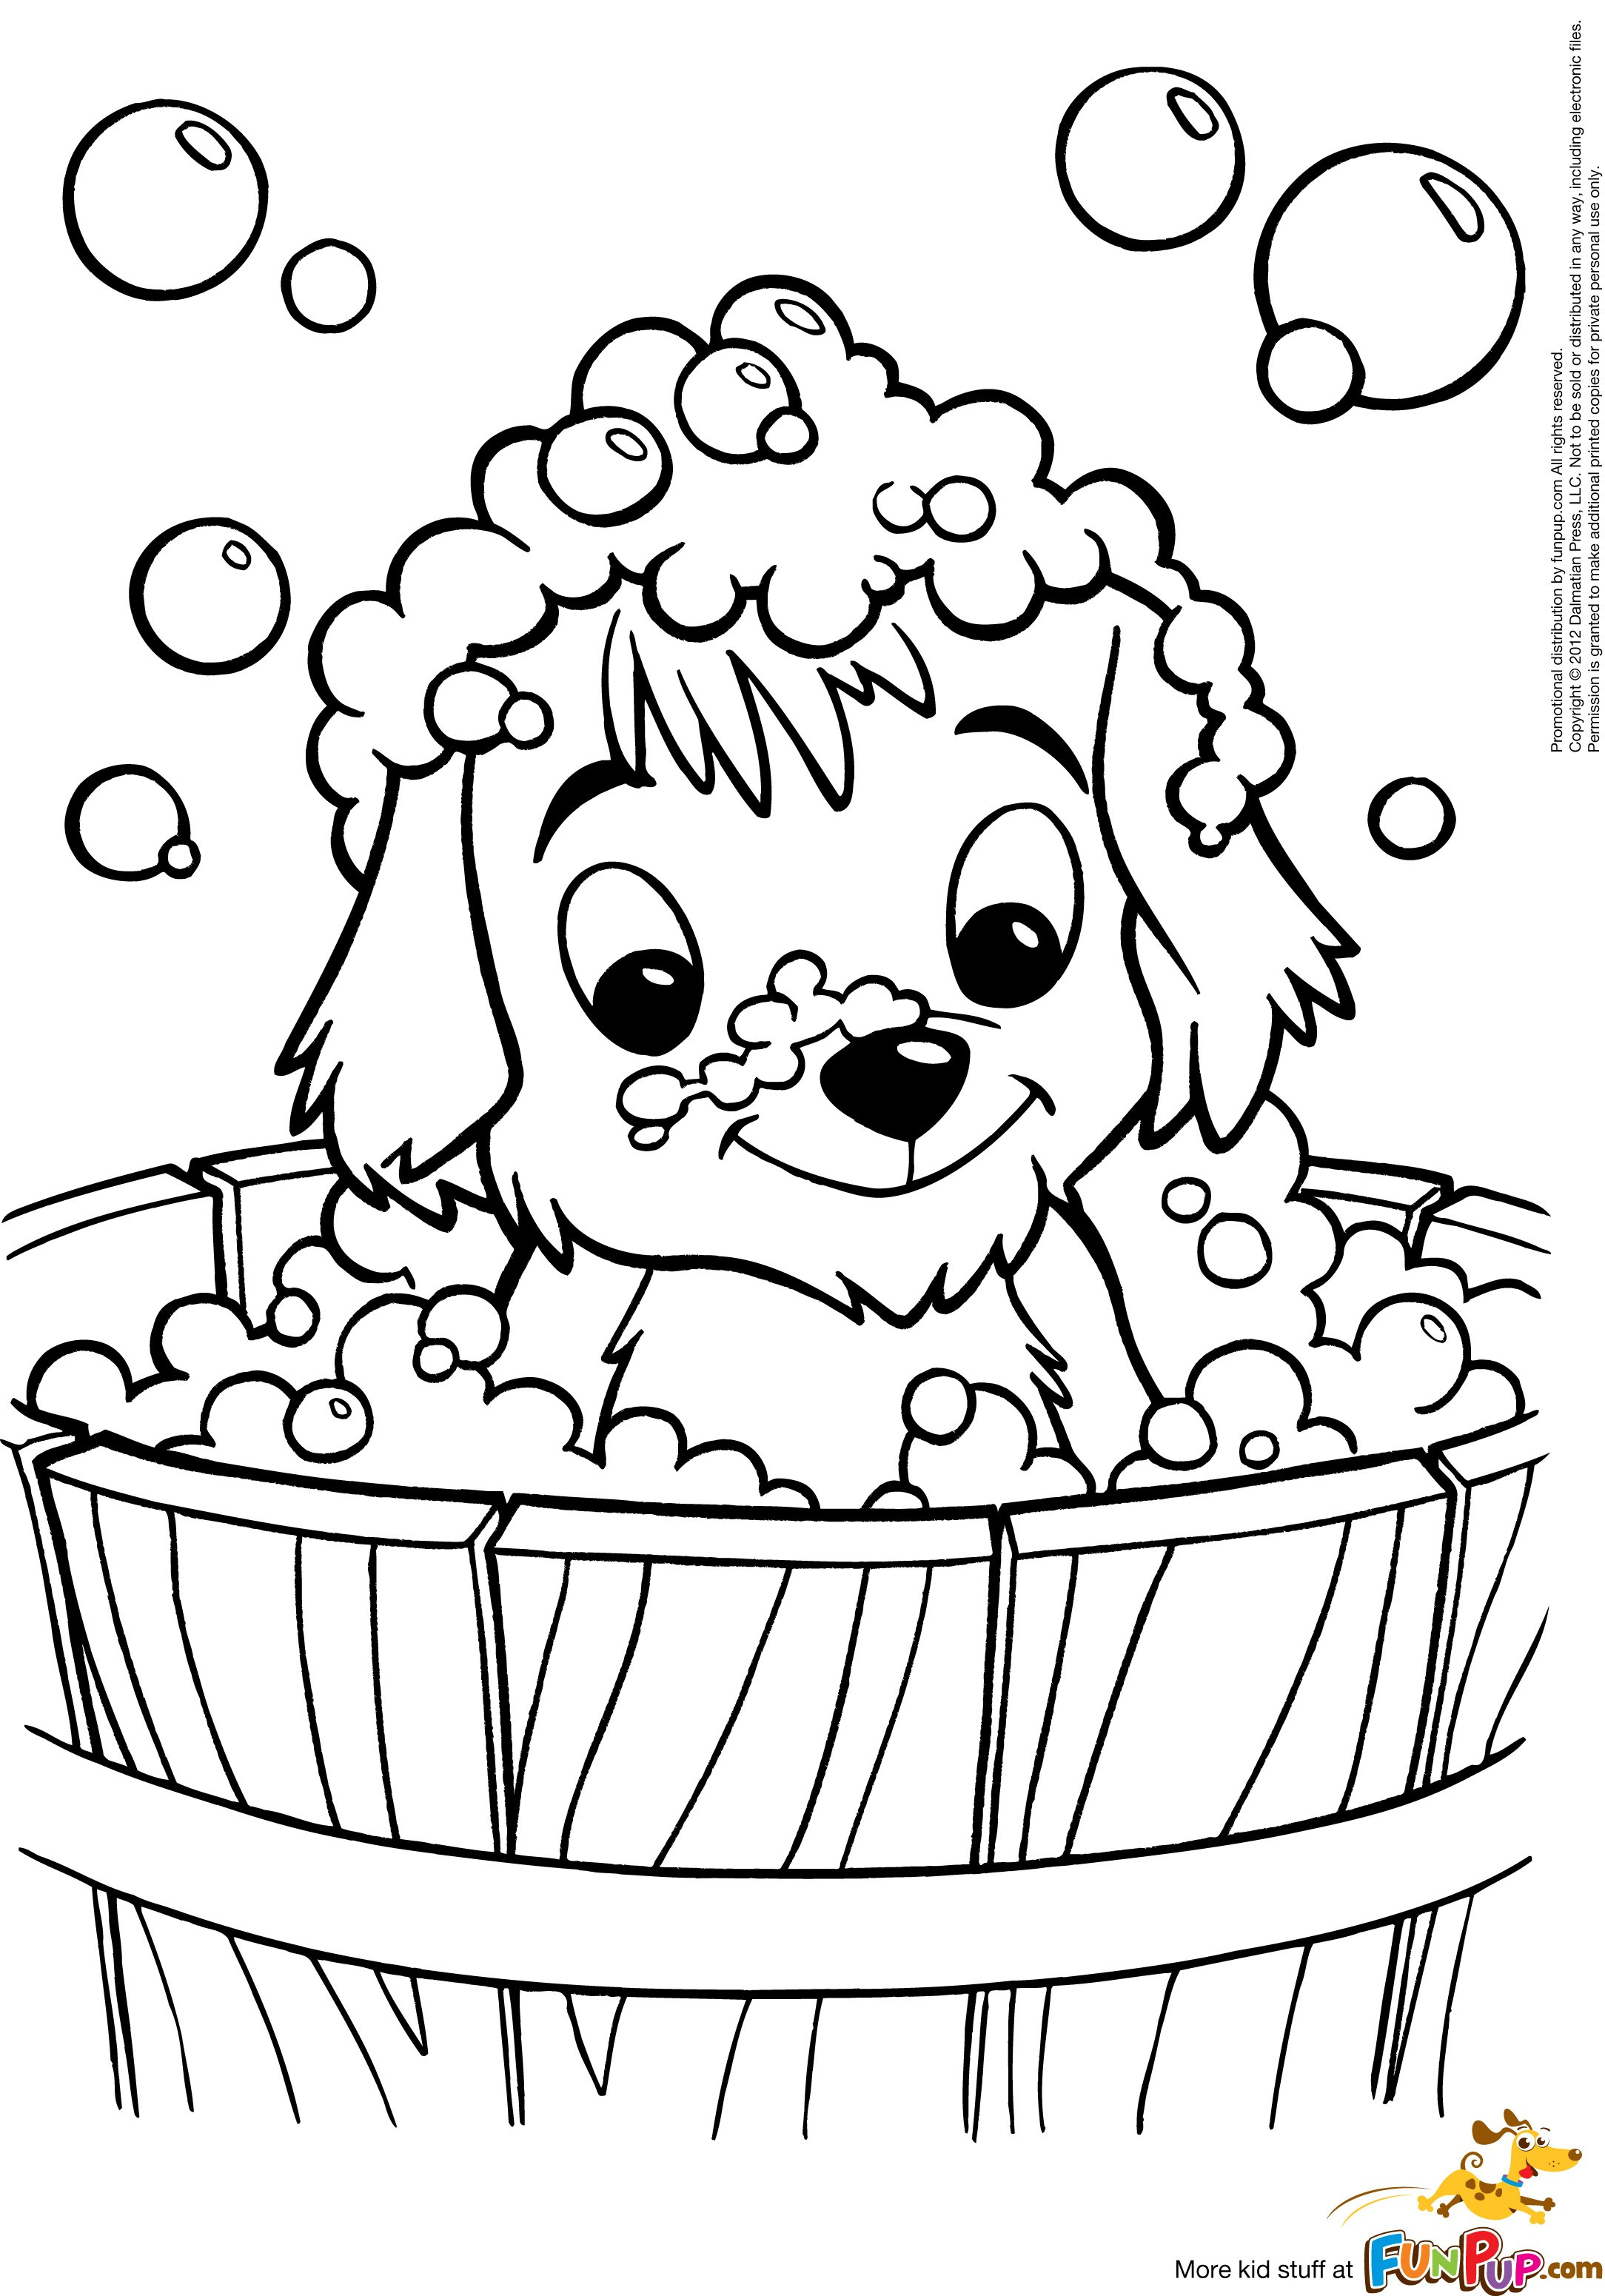 Puppy Love Coloring Pages At Getcolorings